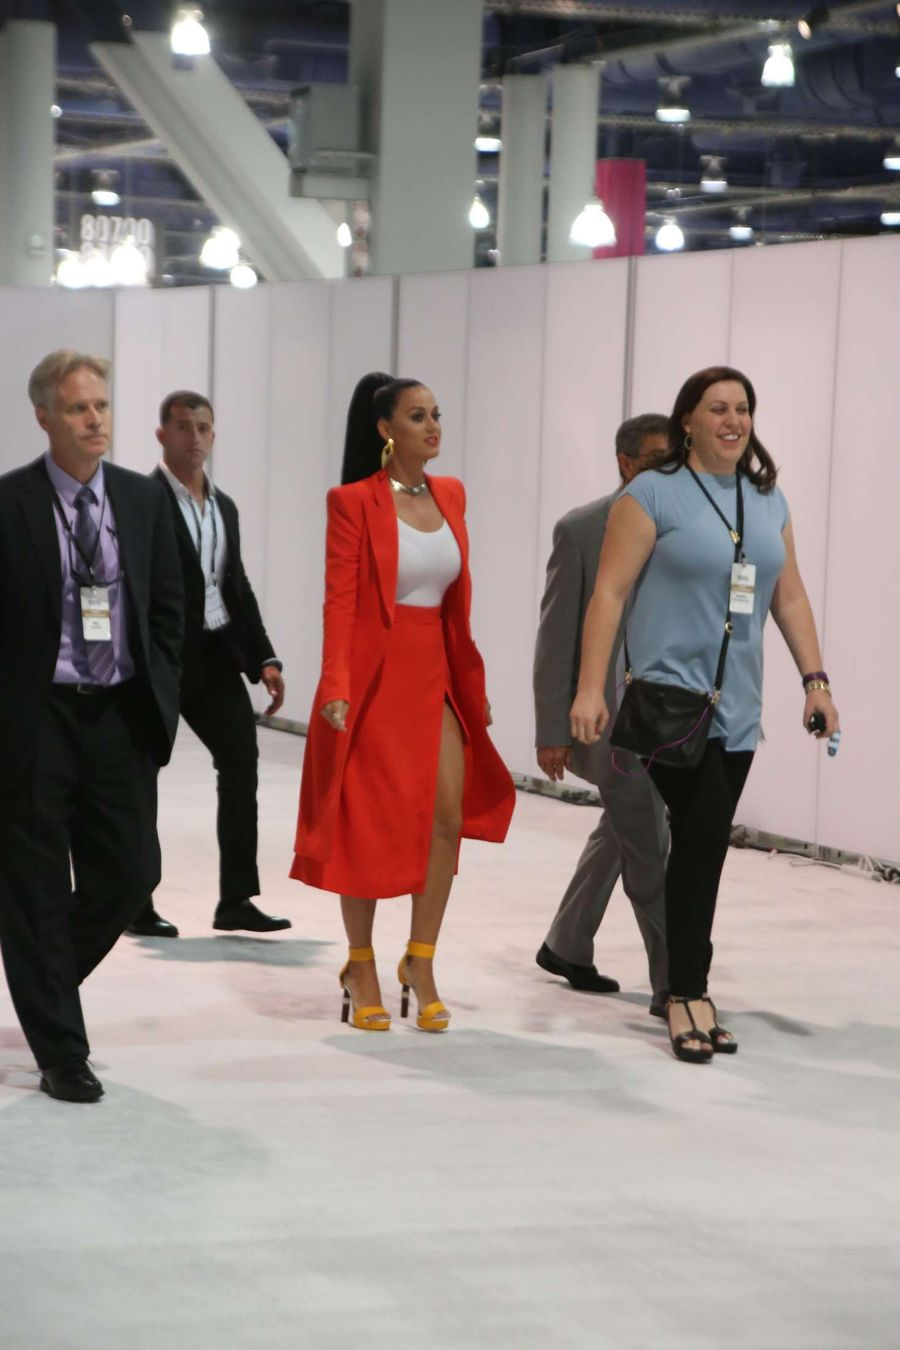 Katy Perry at The Convention Center in Las Vegas